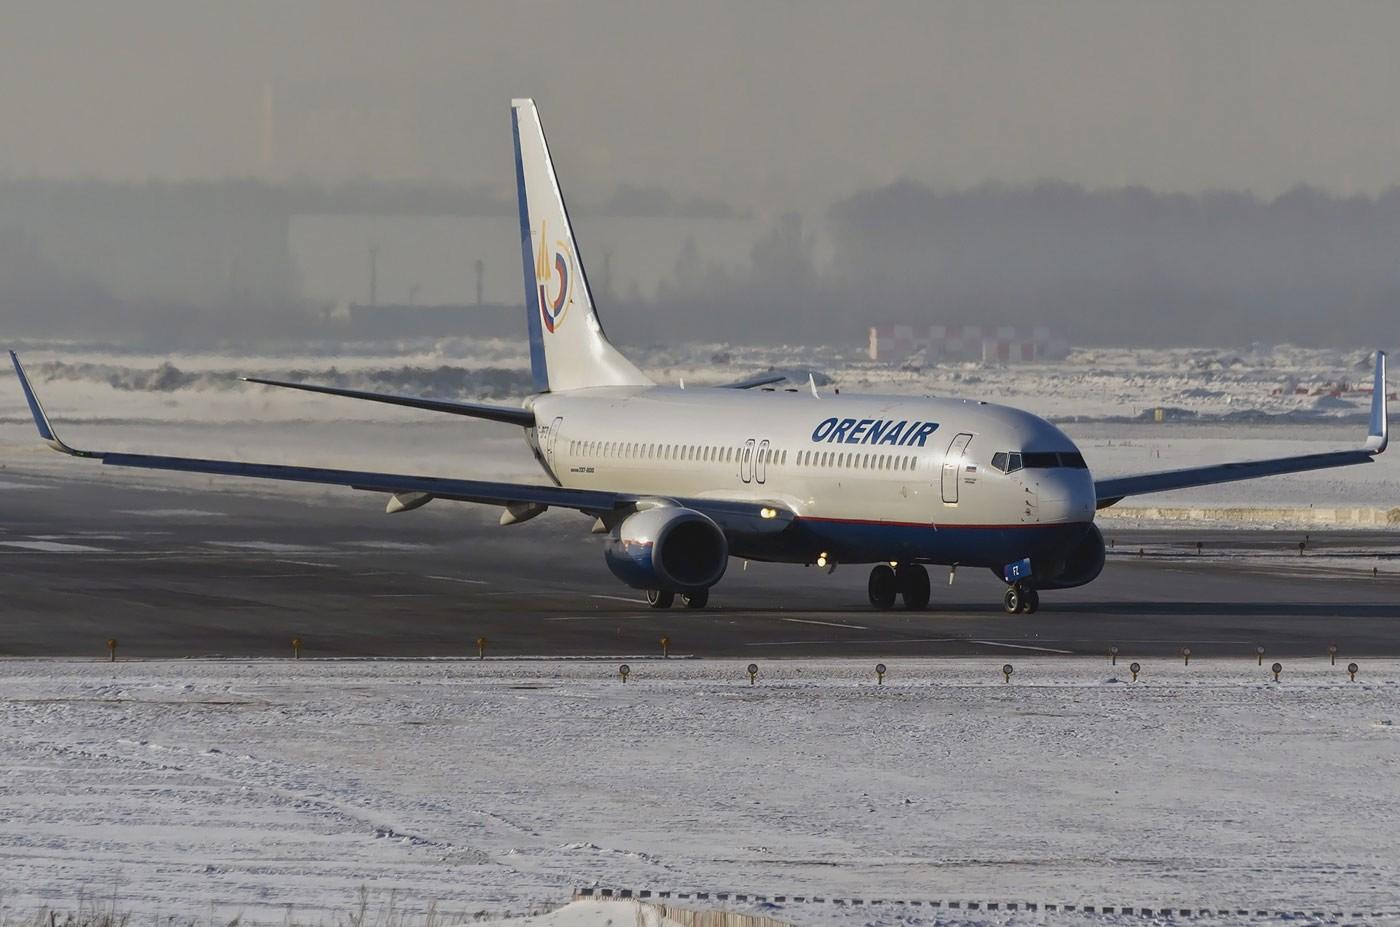 Boeing 737-800 wallpapers HD quality